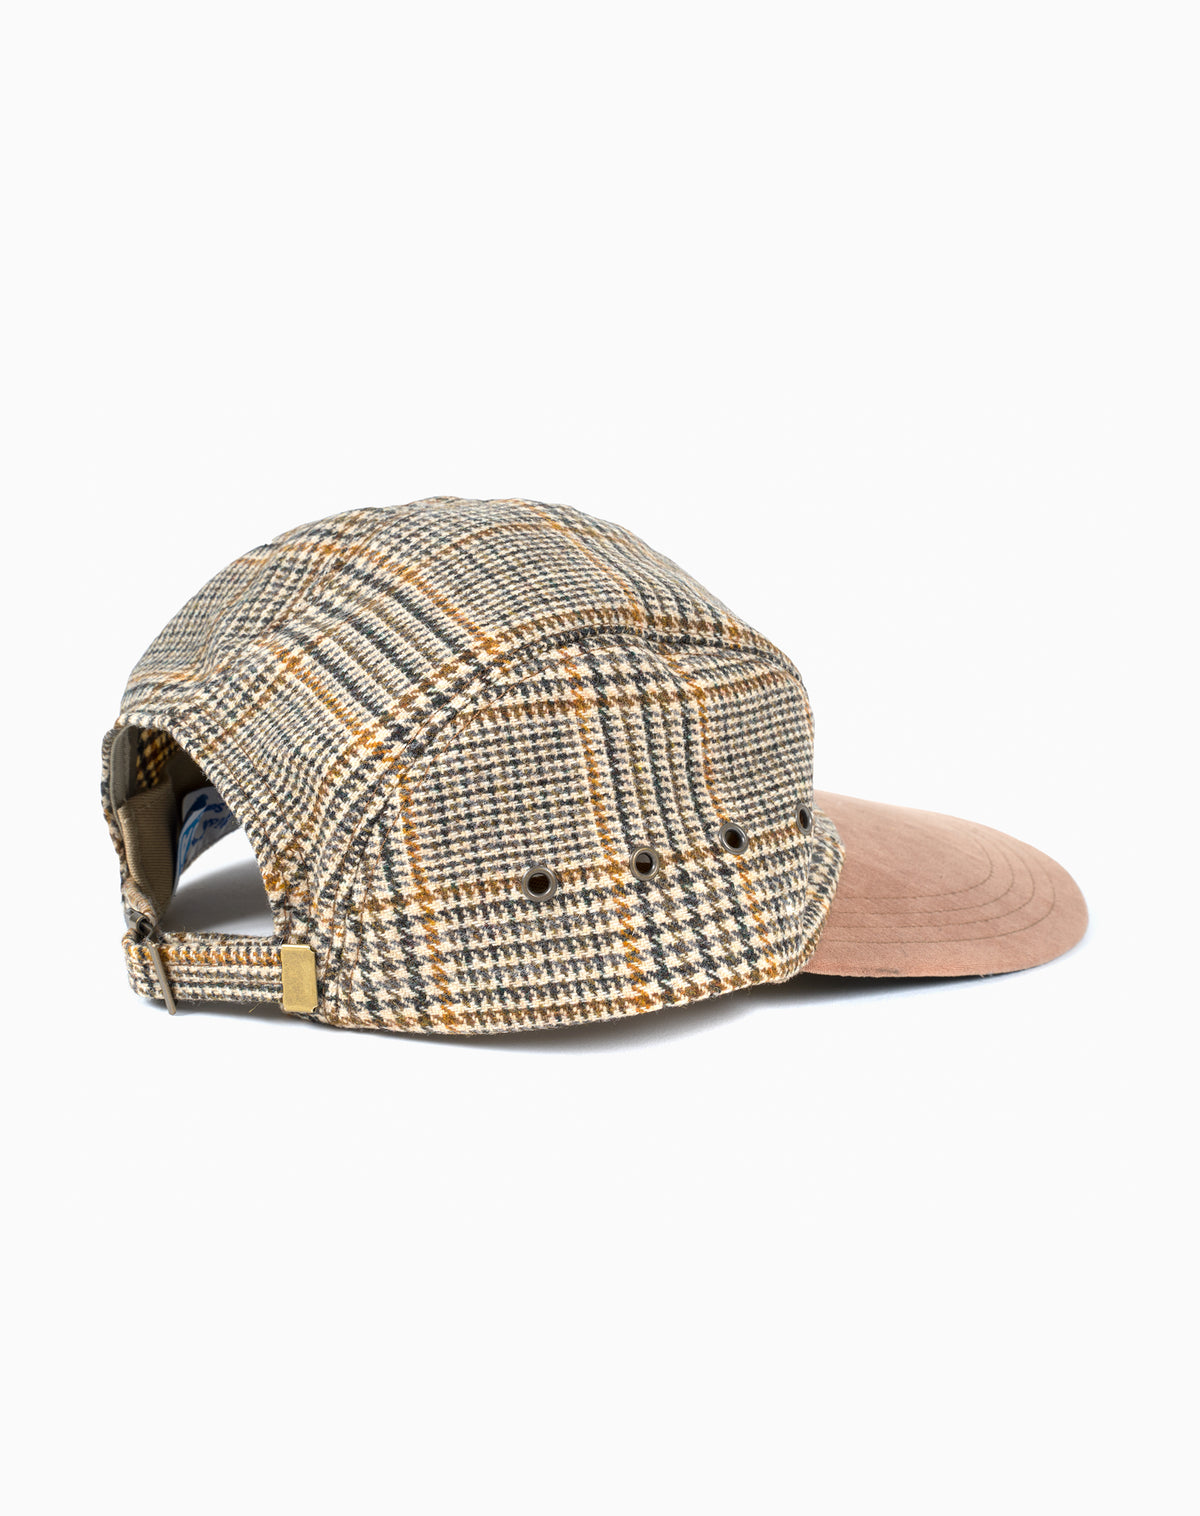 Swordfish in Brown Houndstooth Wool with Suede Brim